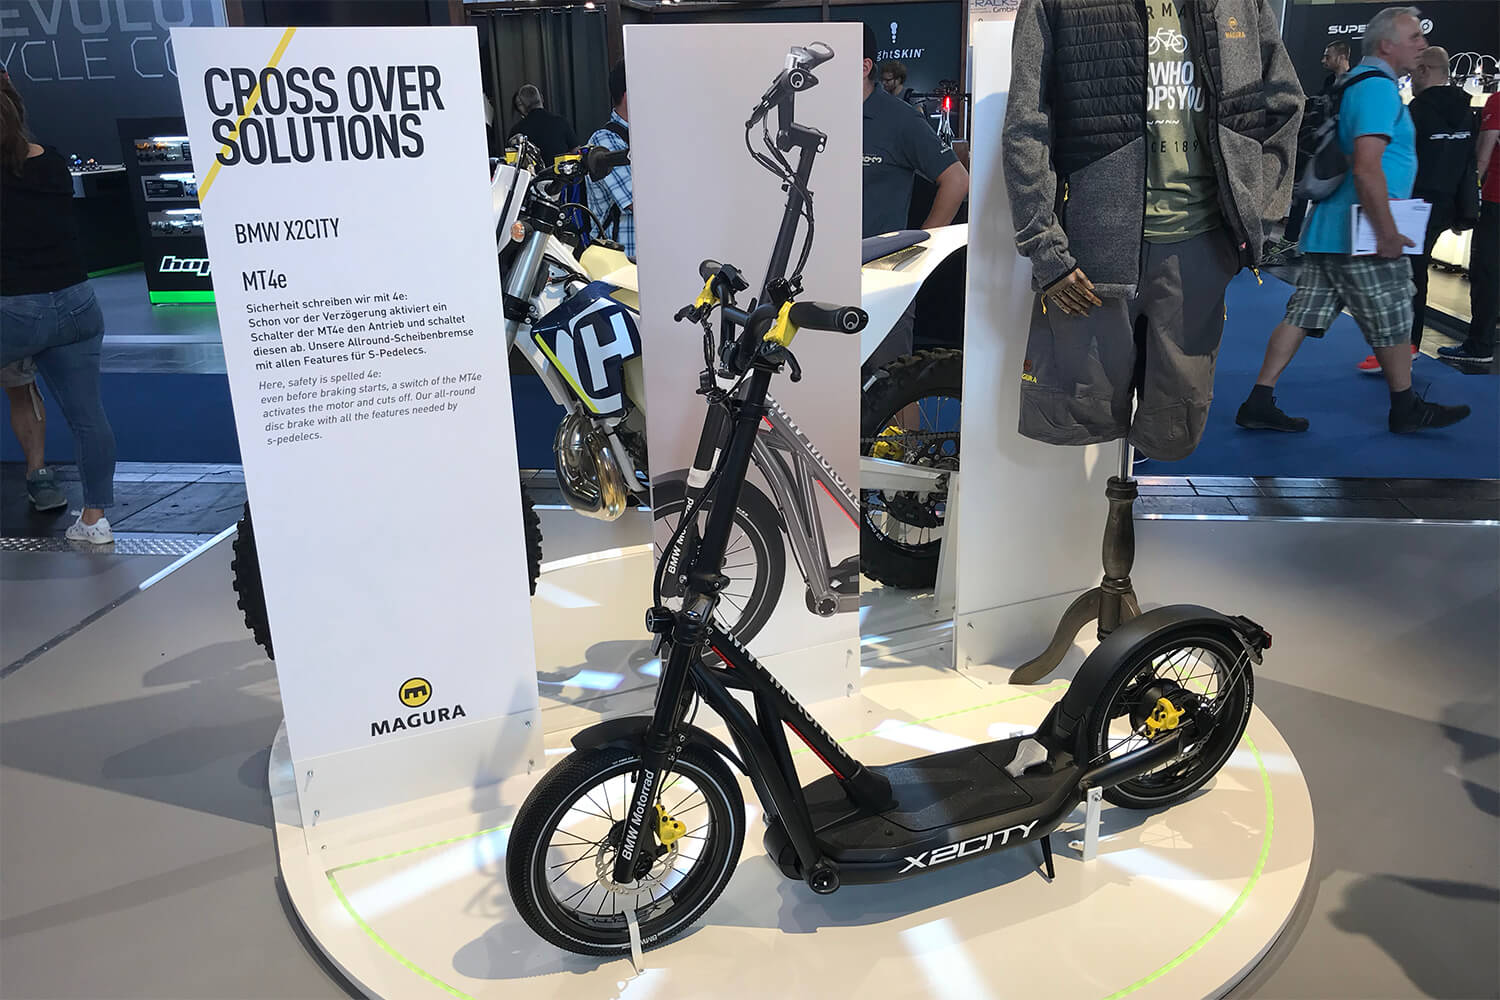 BMW X2City electric scooter